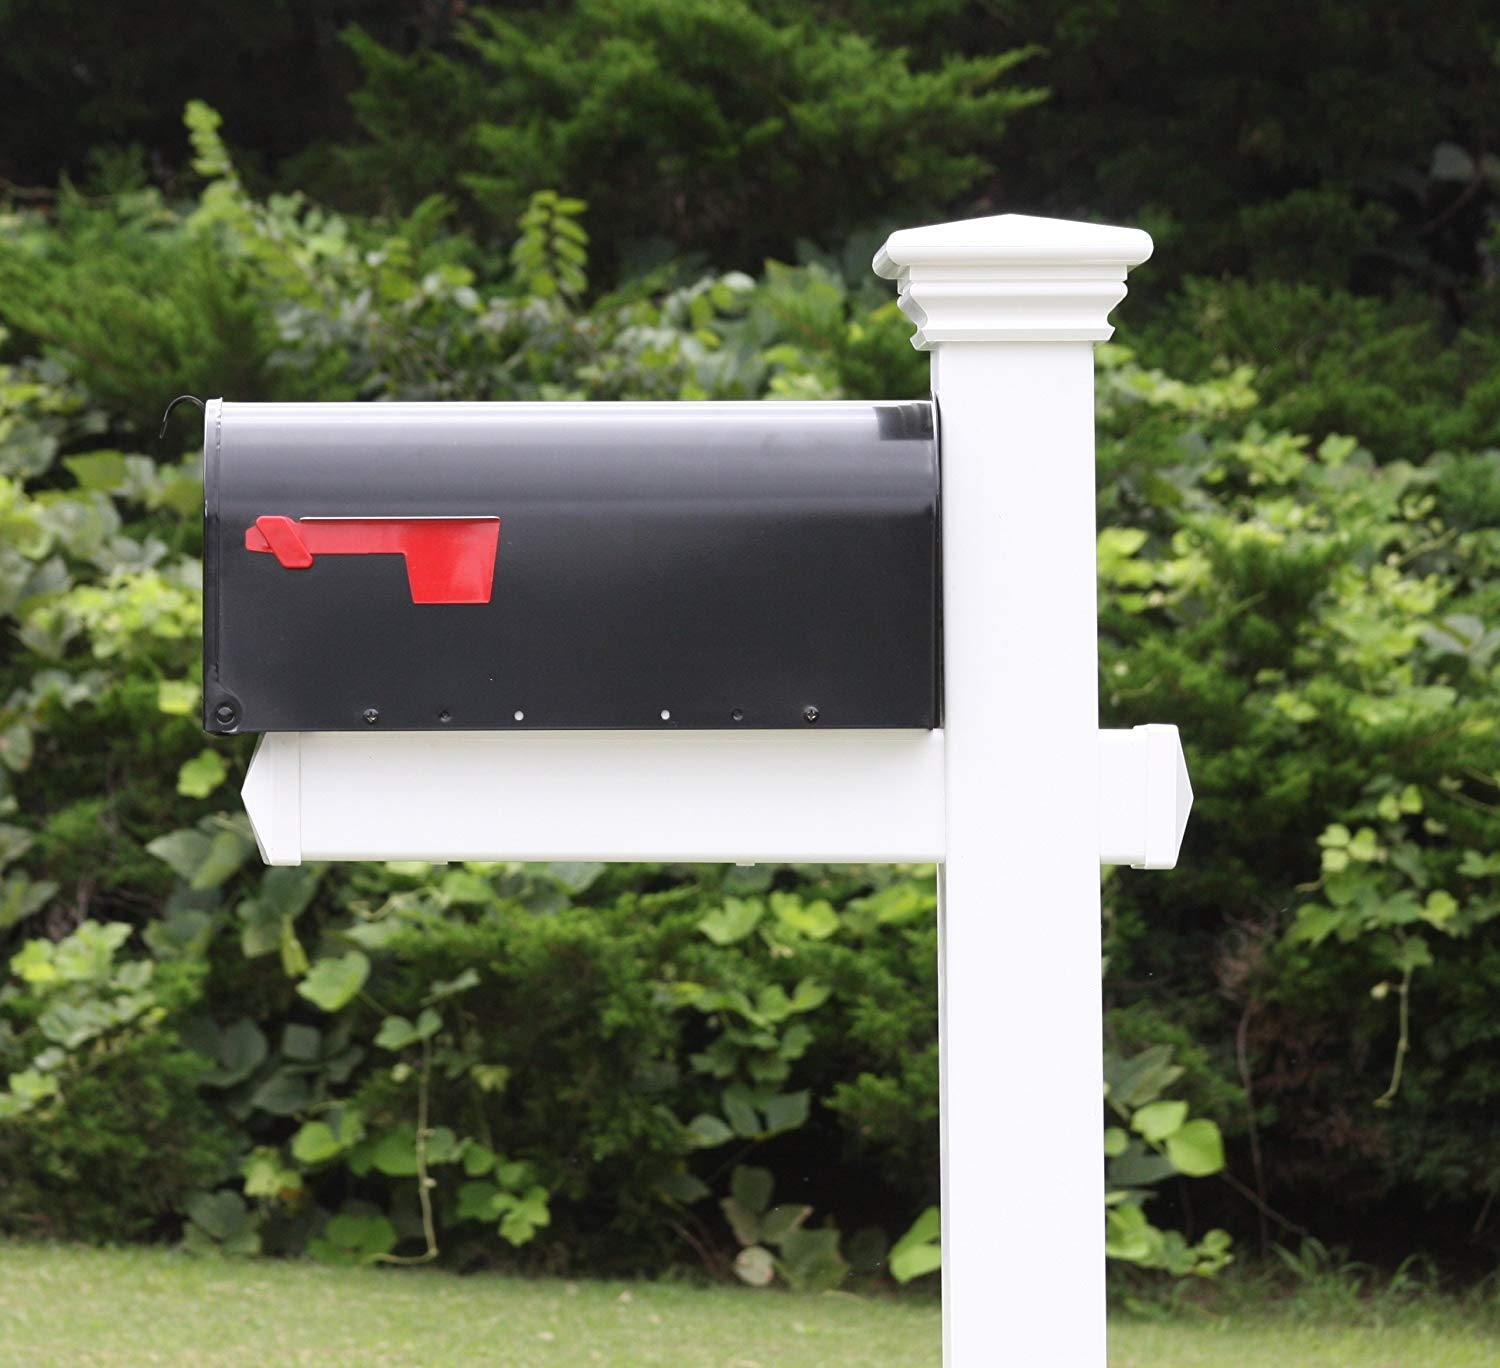 4ever Products The Buchanan Vinyl Pvc Mailbox Post Includes Mailbox Complete Decorative Curbside Mailbox System With Classic Traditional Style Black Mailbox Home Improvement